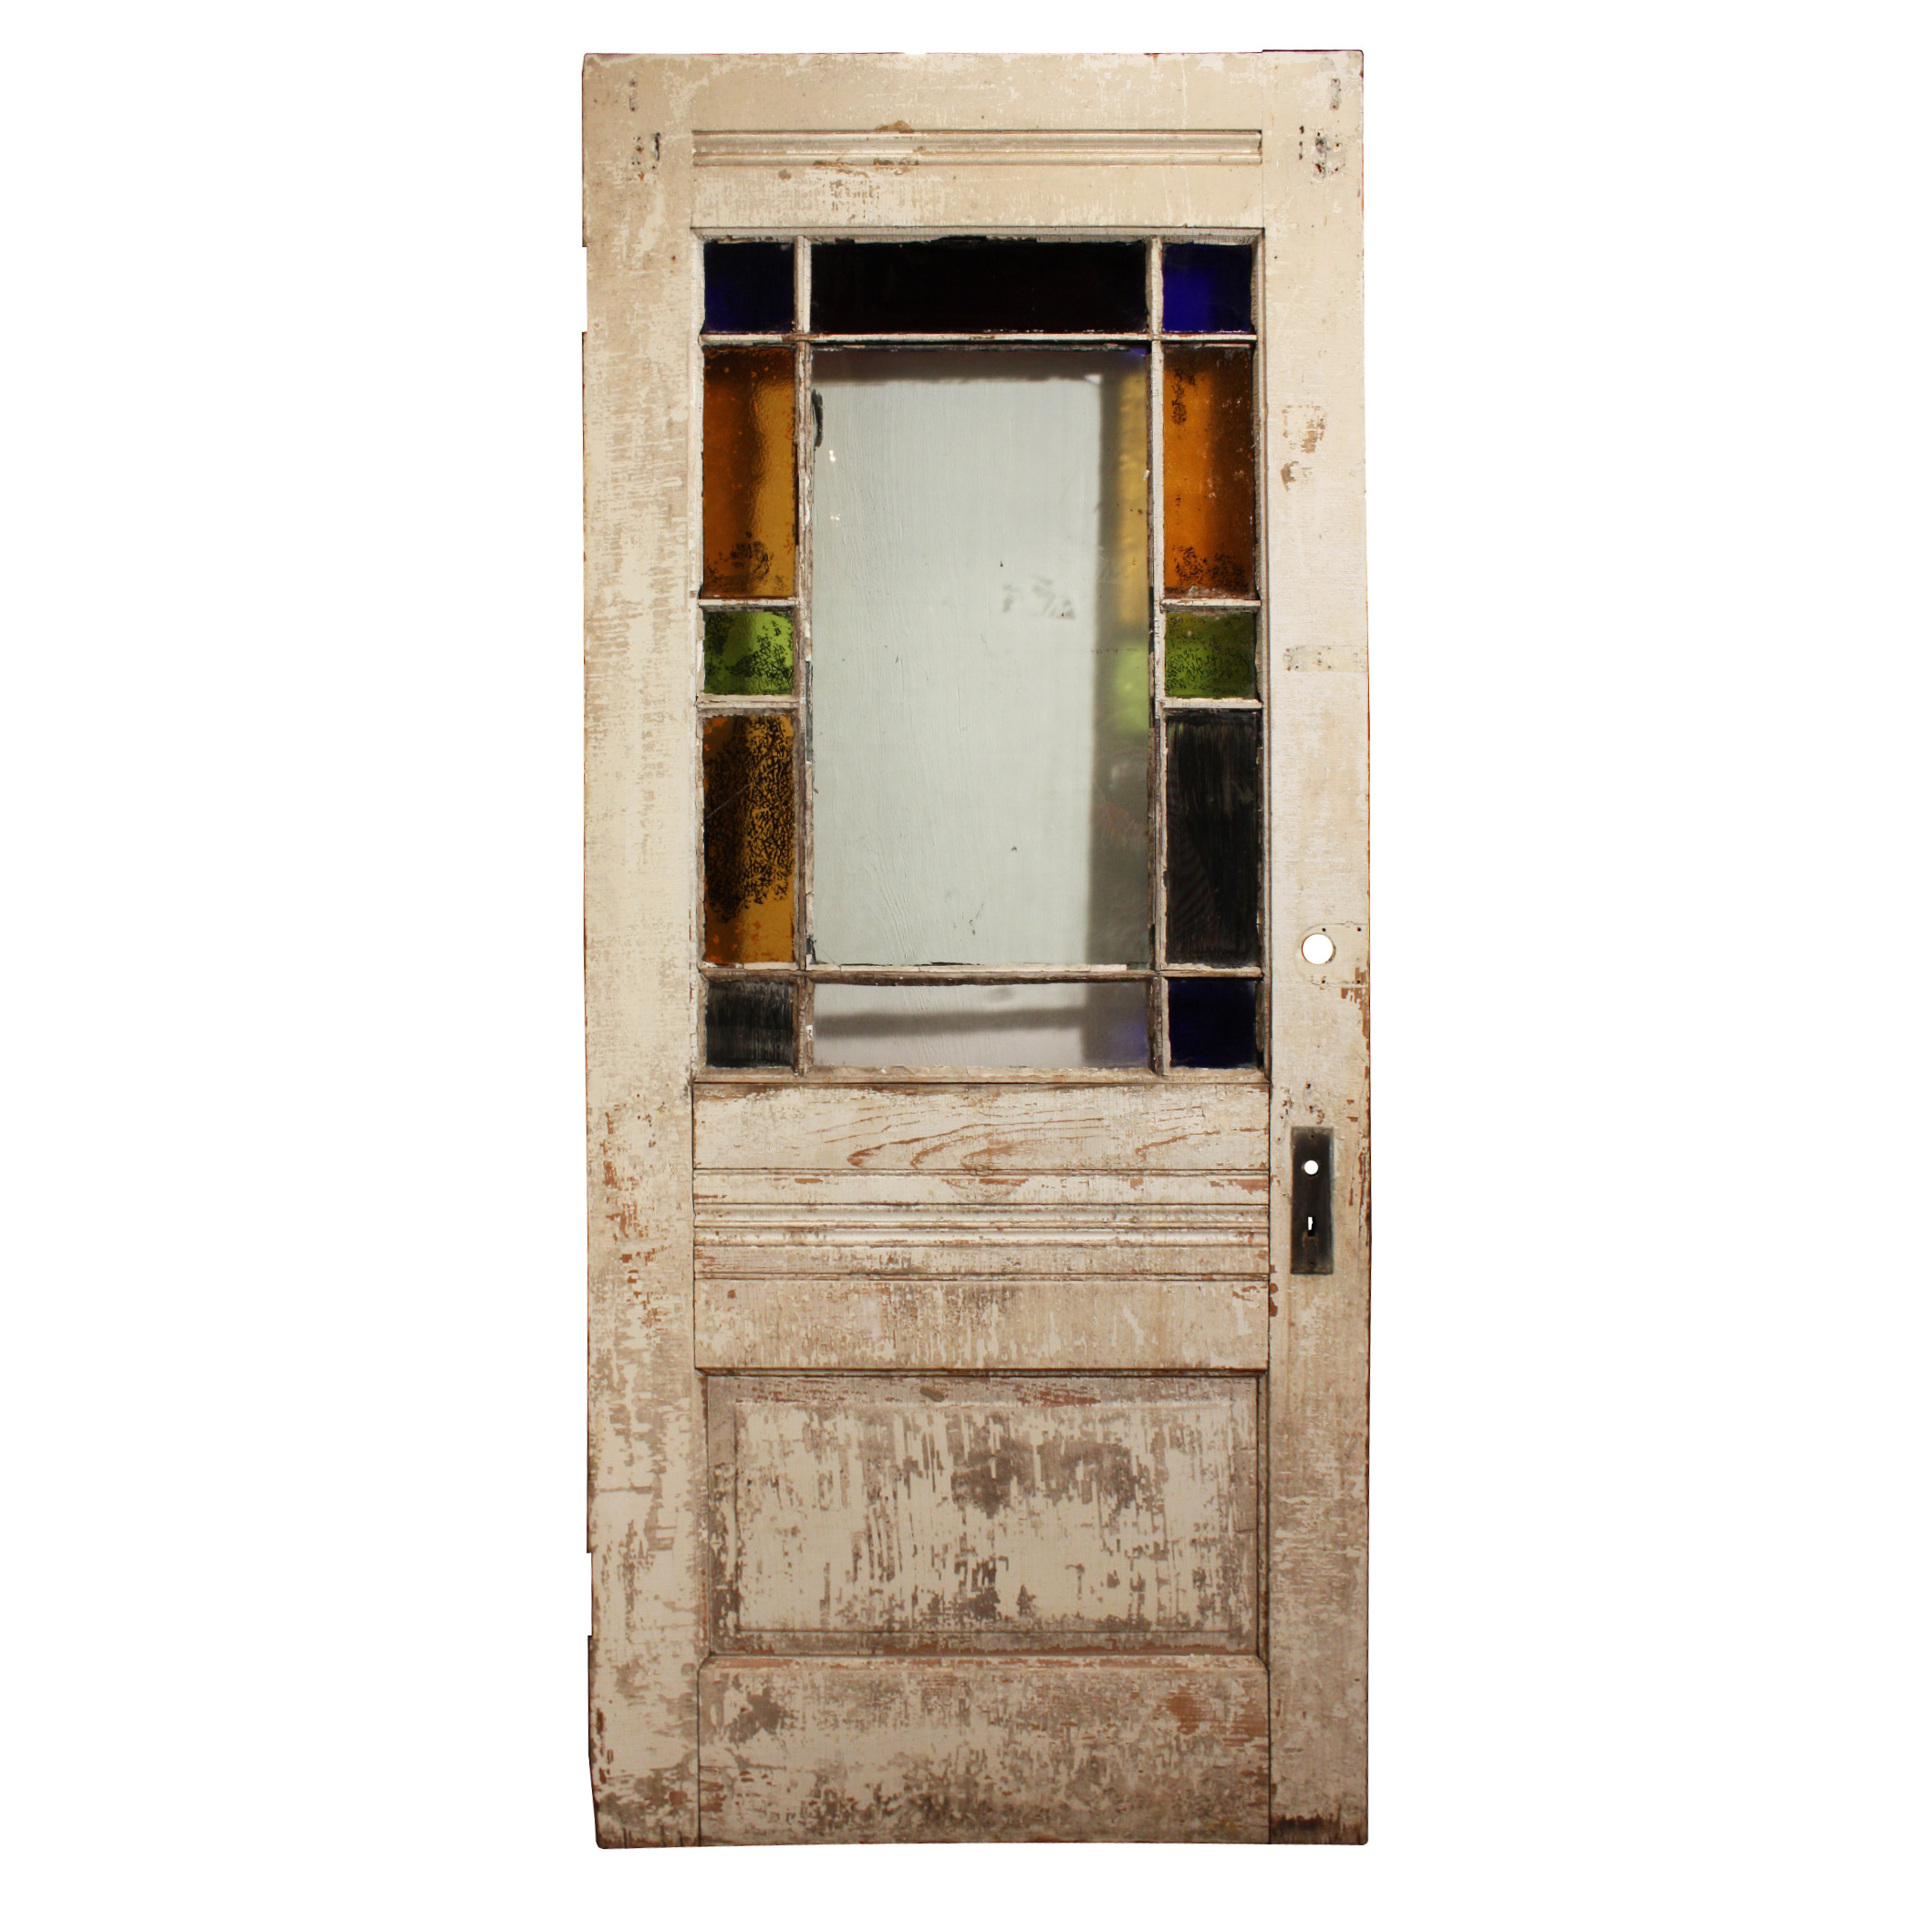 A Wonderful Antique Exterior Door Featuring Stained Glass Border And Lower Central Panel With Carved Wheat Stalk Medallion Dating From The 1880 S